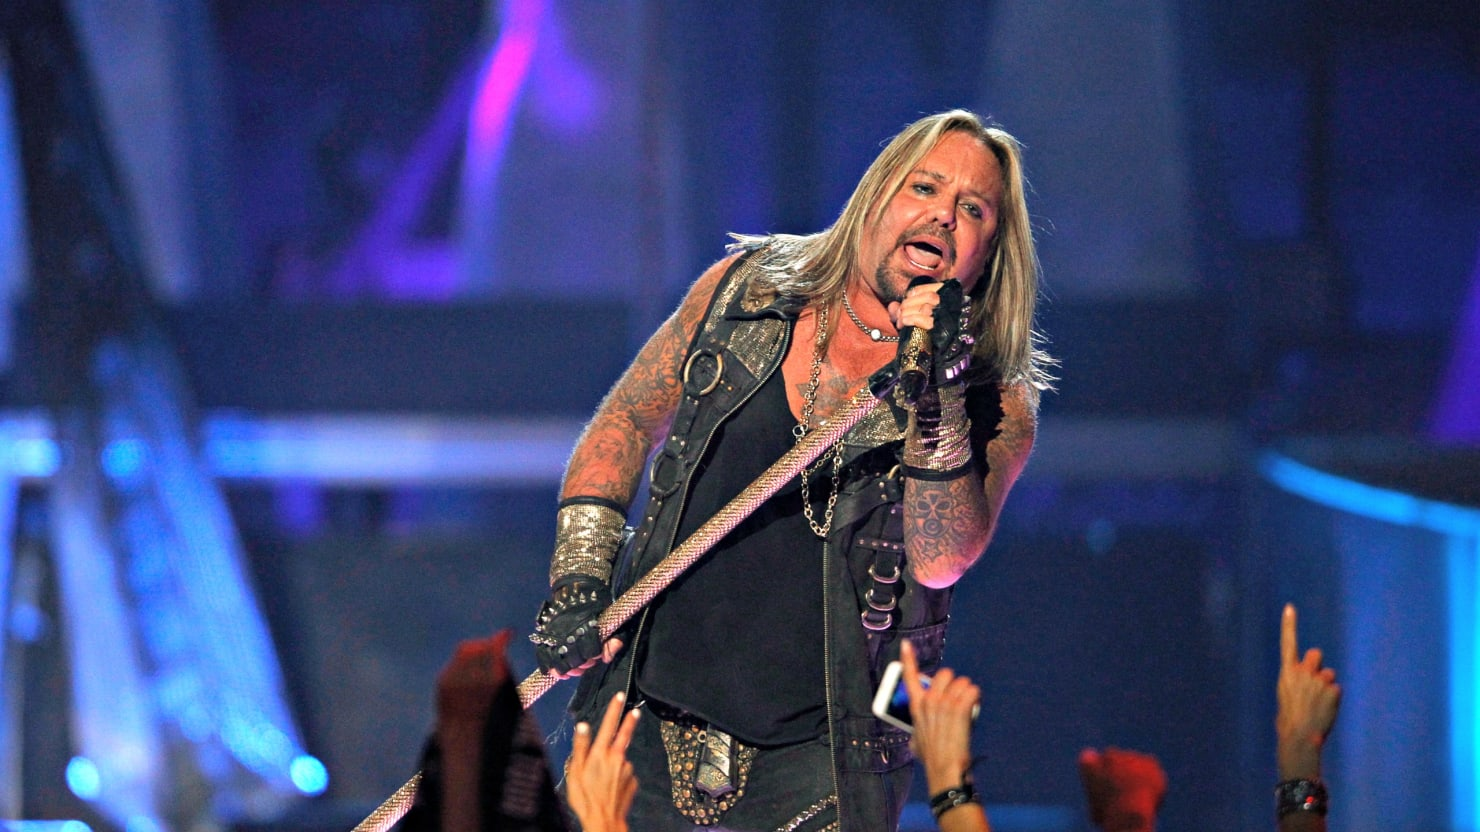 vince neil to perform at trump inauguration